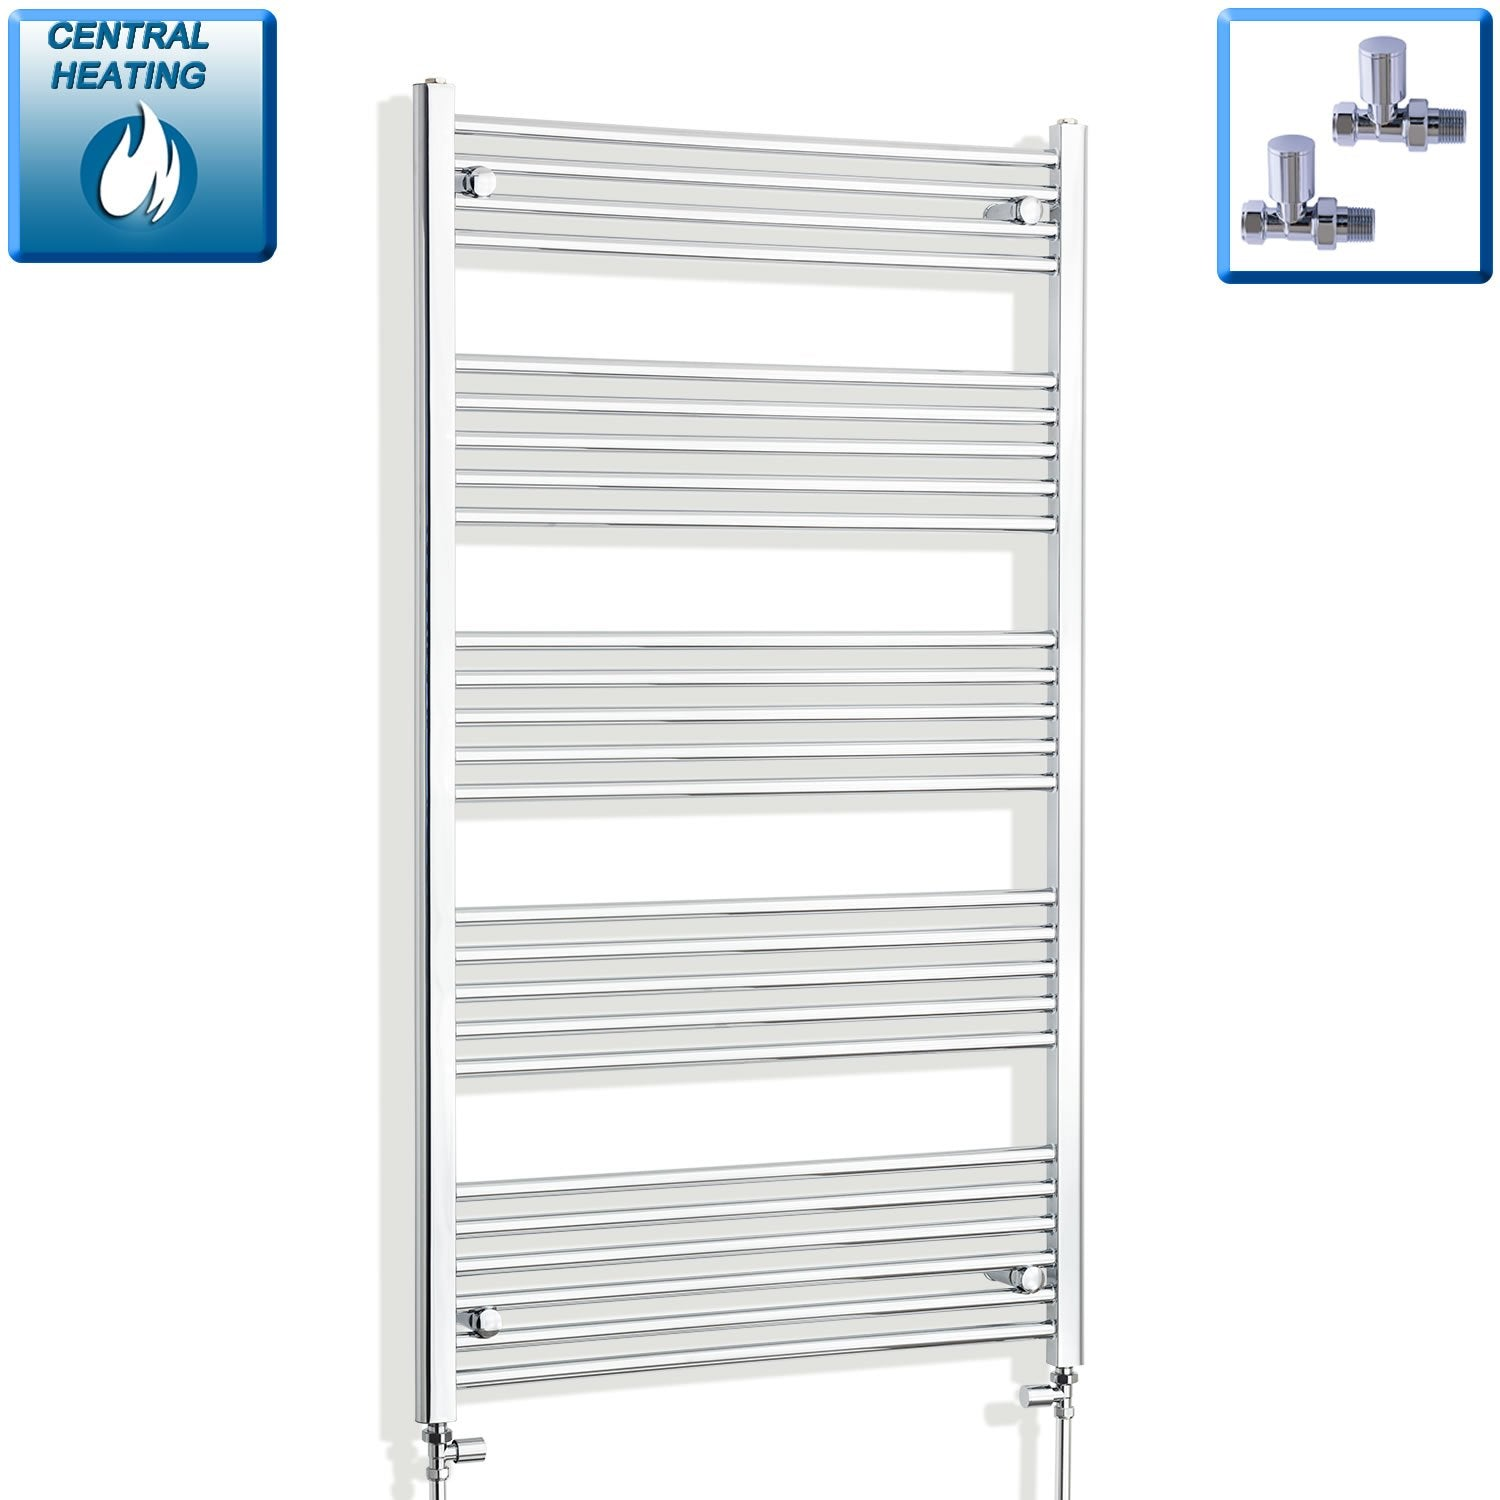 900mm Wide 1400mm High Flat Chrome Heated Towel Rail Radiator HTR,With Straight Valve